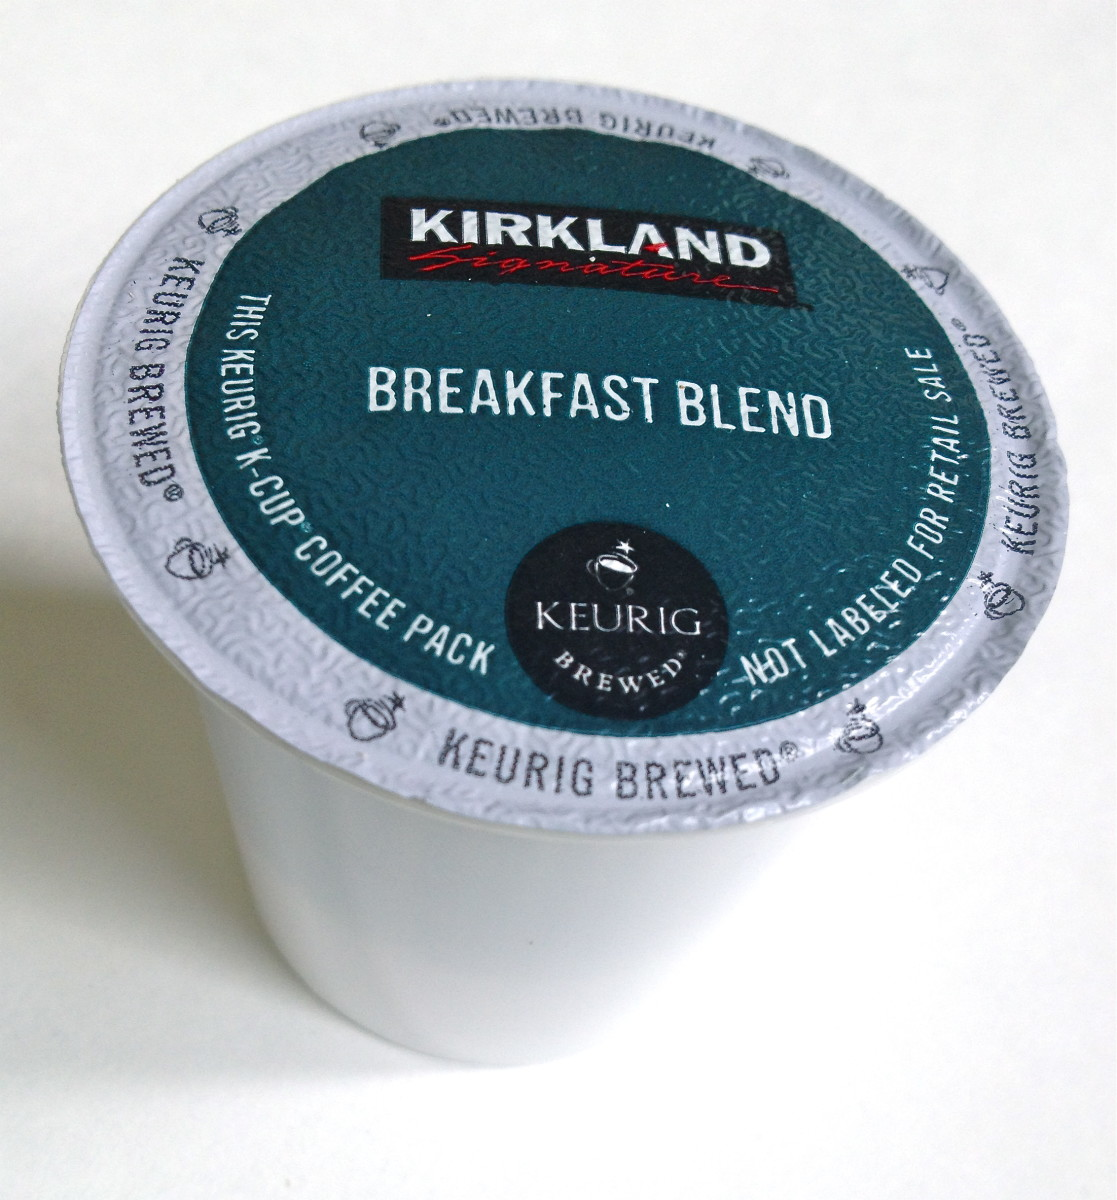 Coffee pods are expensive but are much more affordable when you purchase the Kirkland brand.